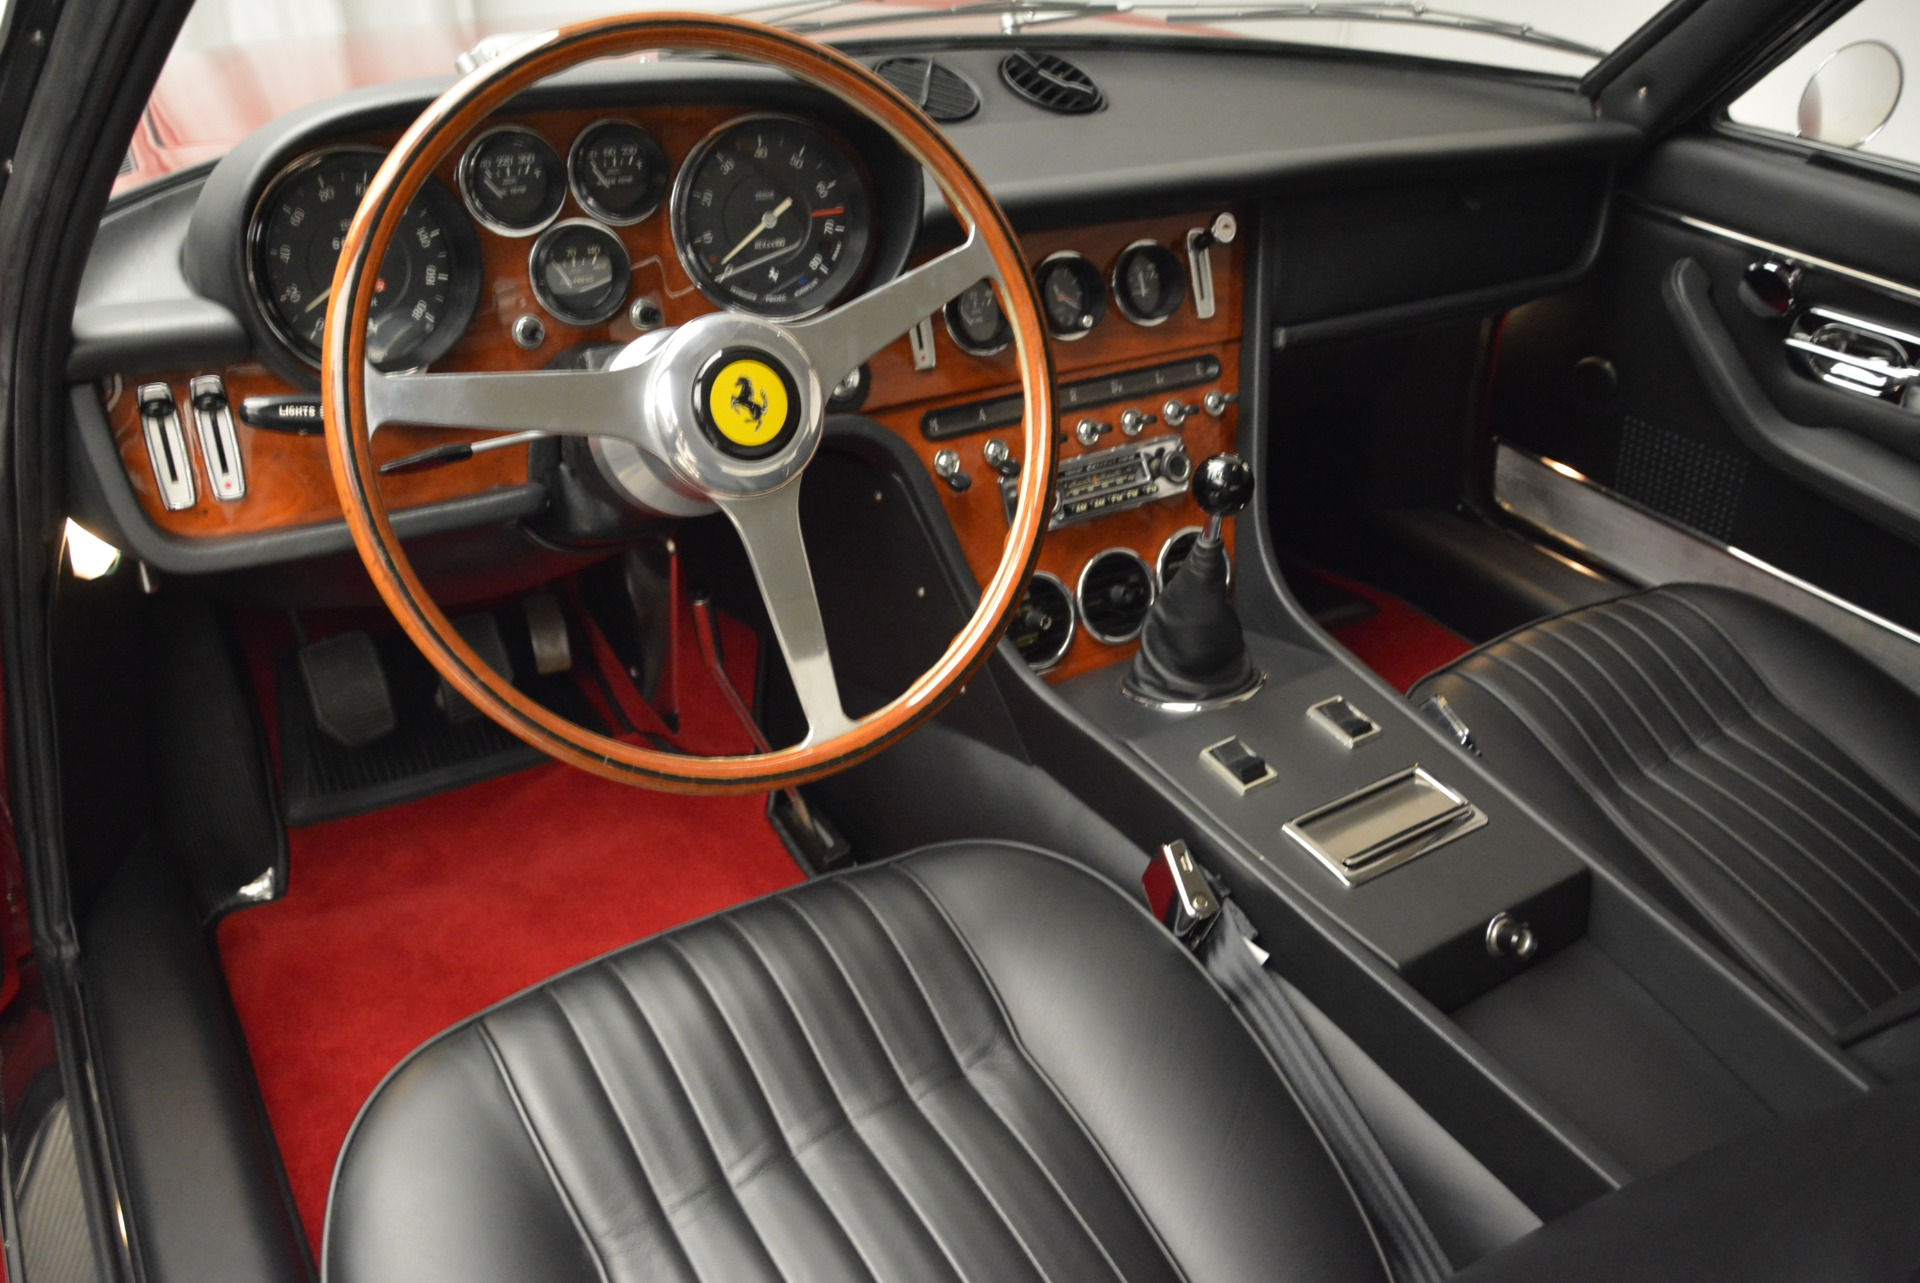 Used 1969 Ferrari 365 GT 2+2  For Sale In Greenwich, CT 1995_p13